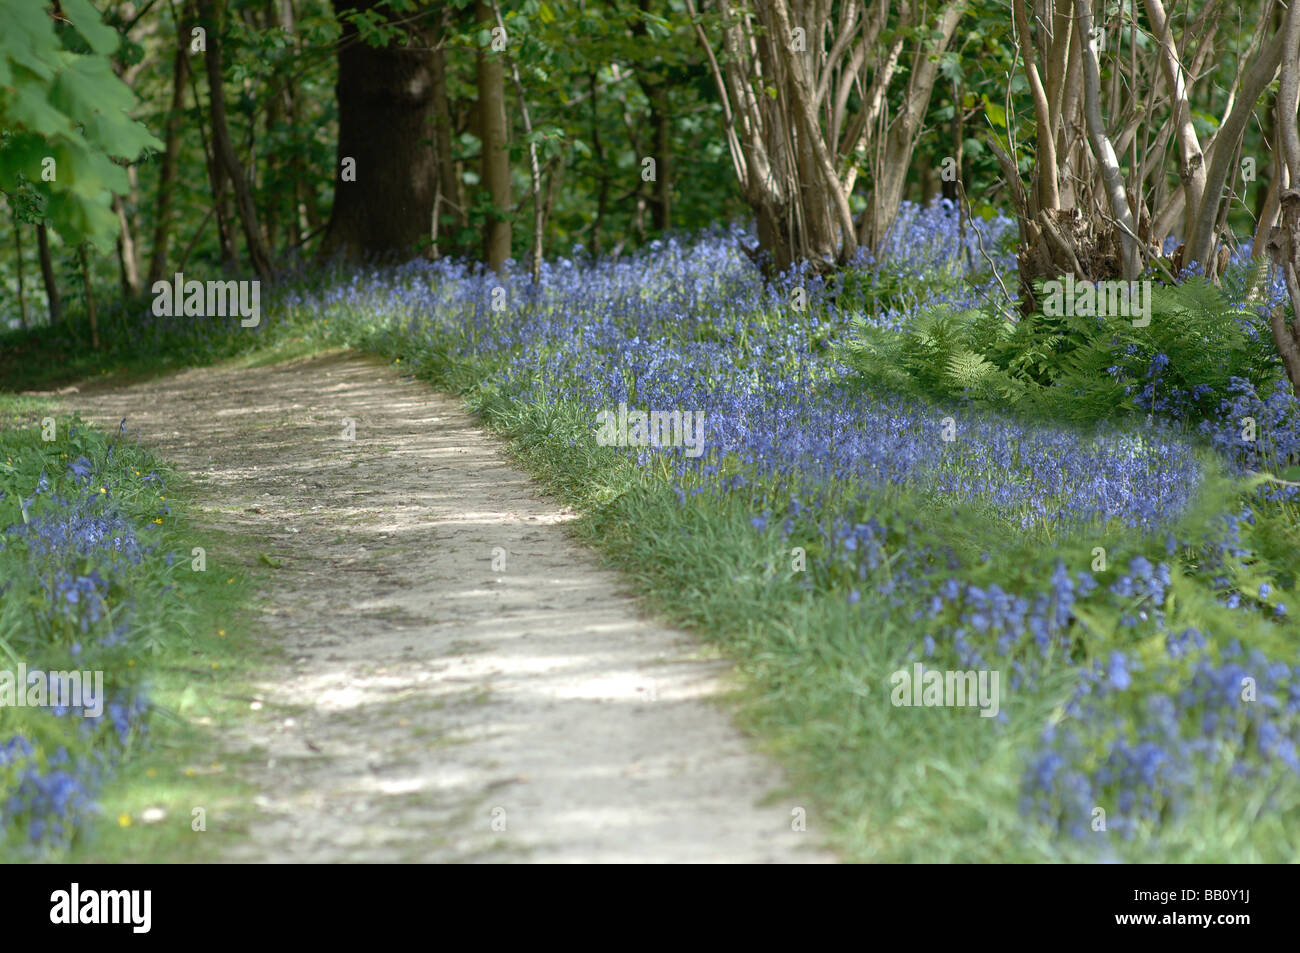 Bluebells in woods in Kent, England - Stock Image